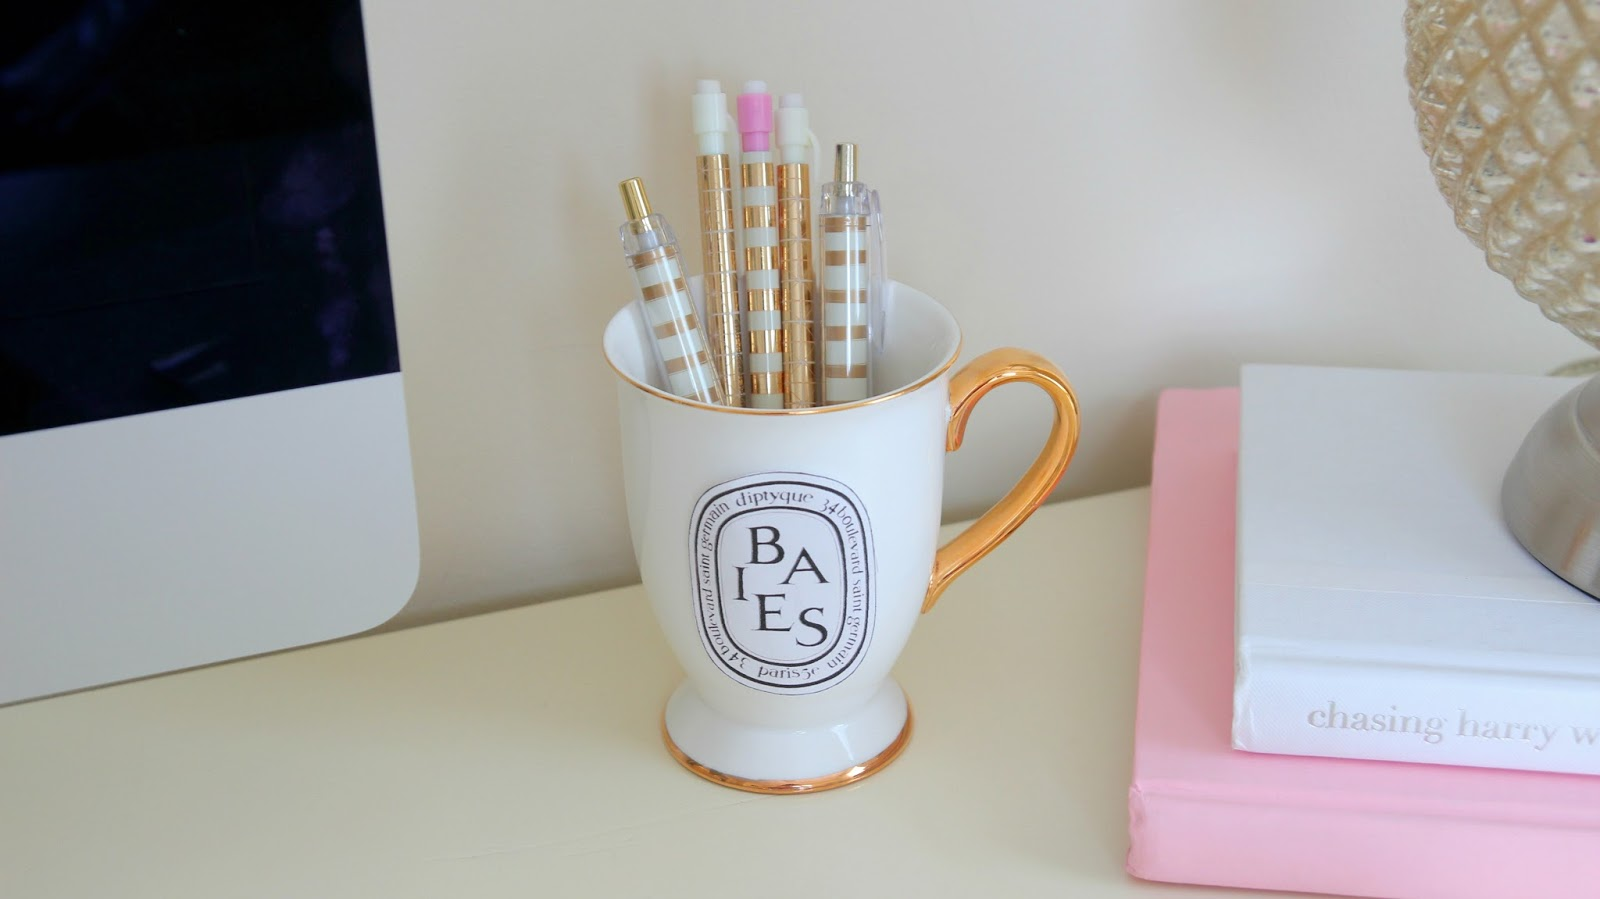 Desk Organization - DIY Desk Decor - DIY Pen Cup - Tumblr Desk - Pink & Gold - DIY Diptyque